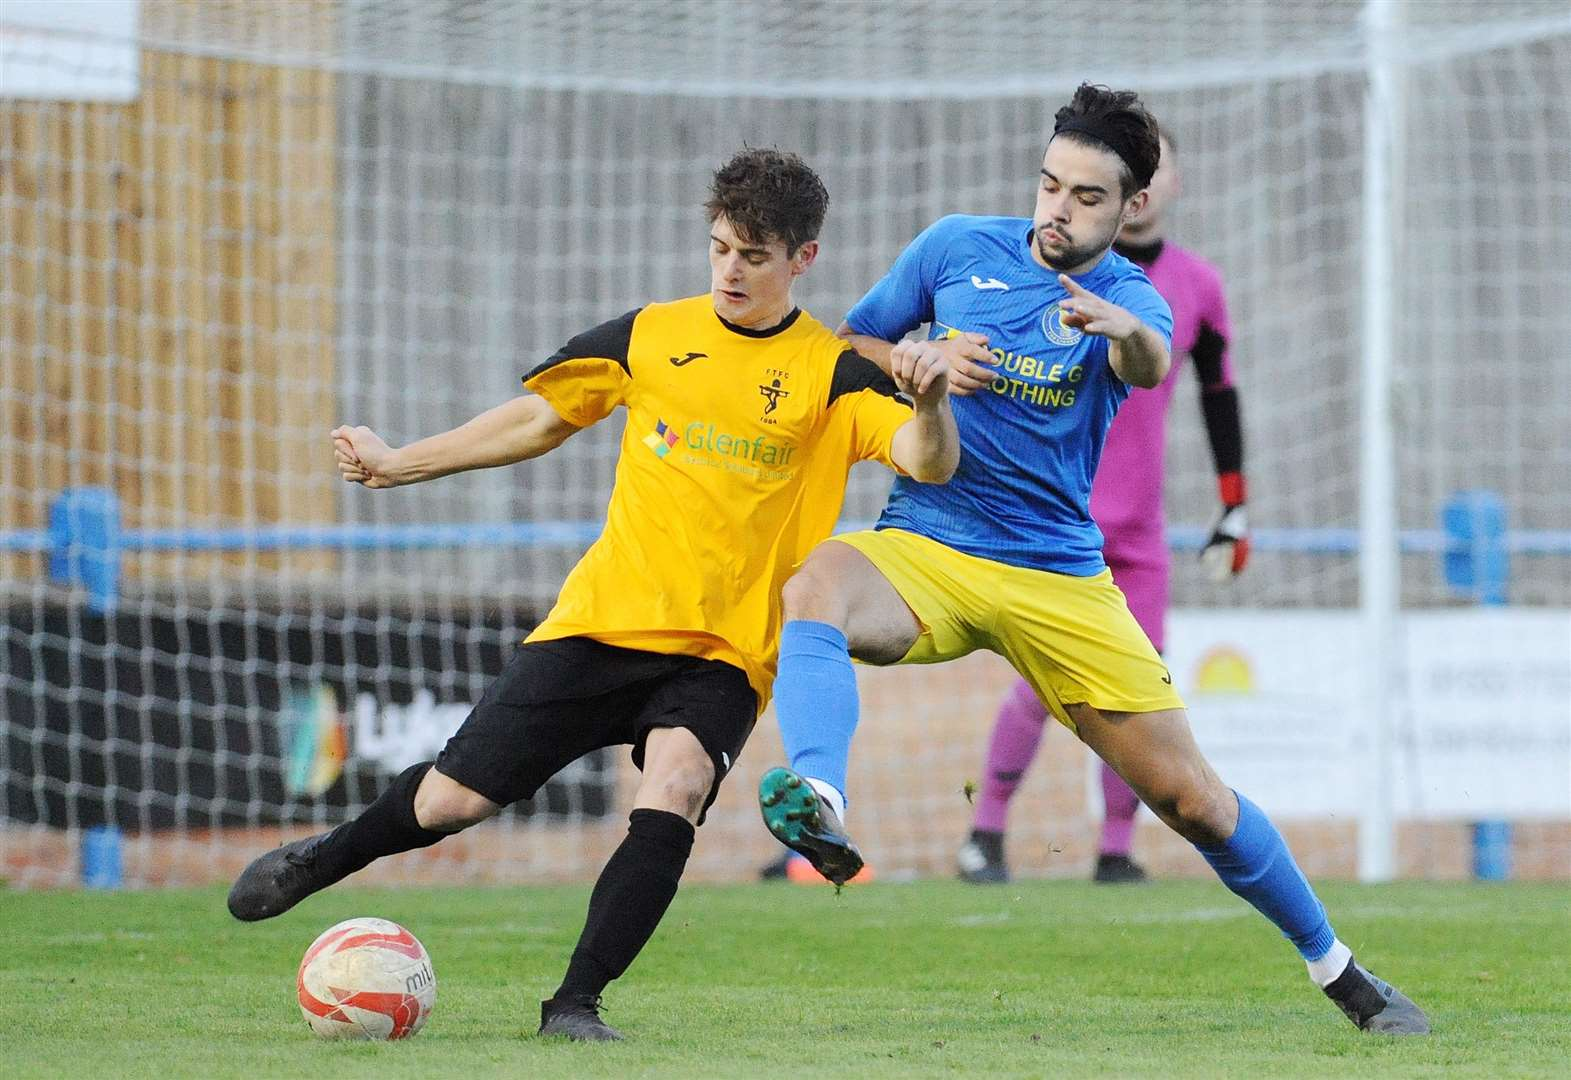 Football: Hares have Edge on Fenland sides' signings